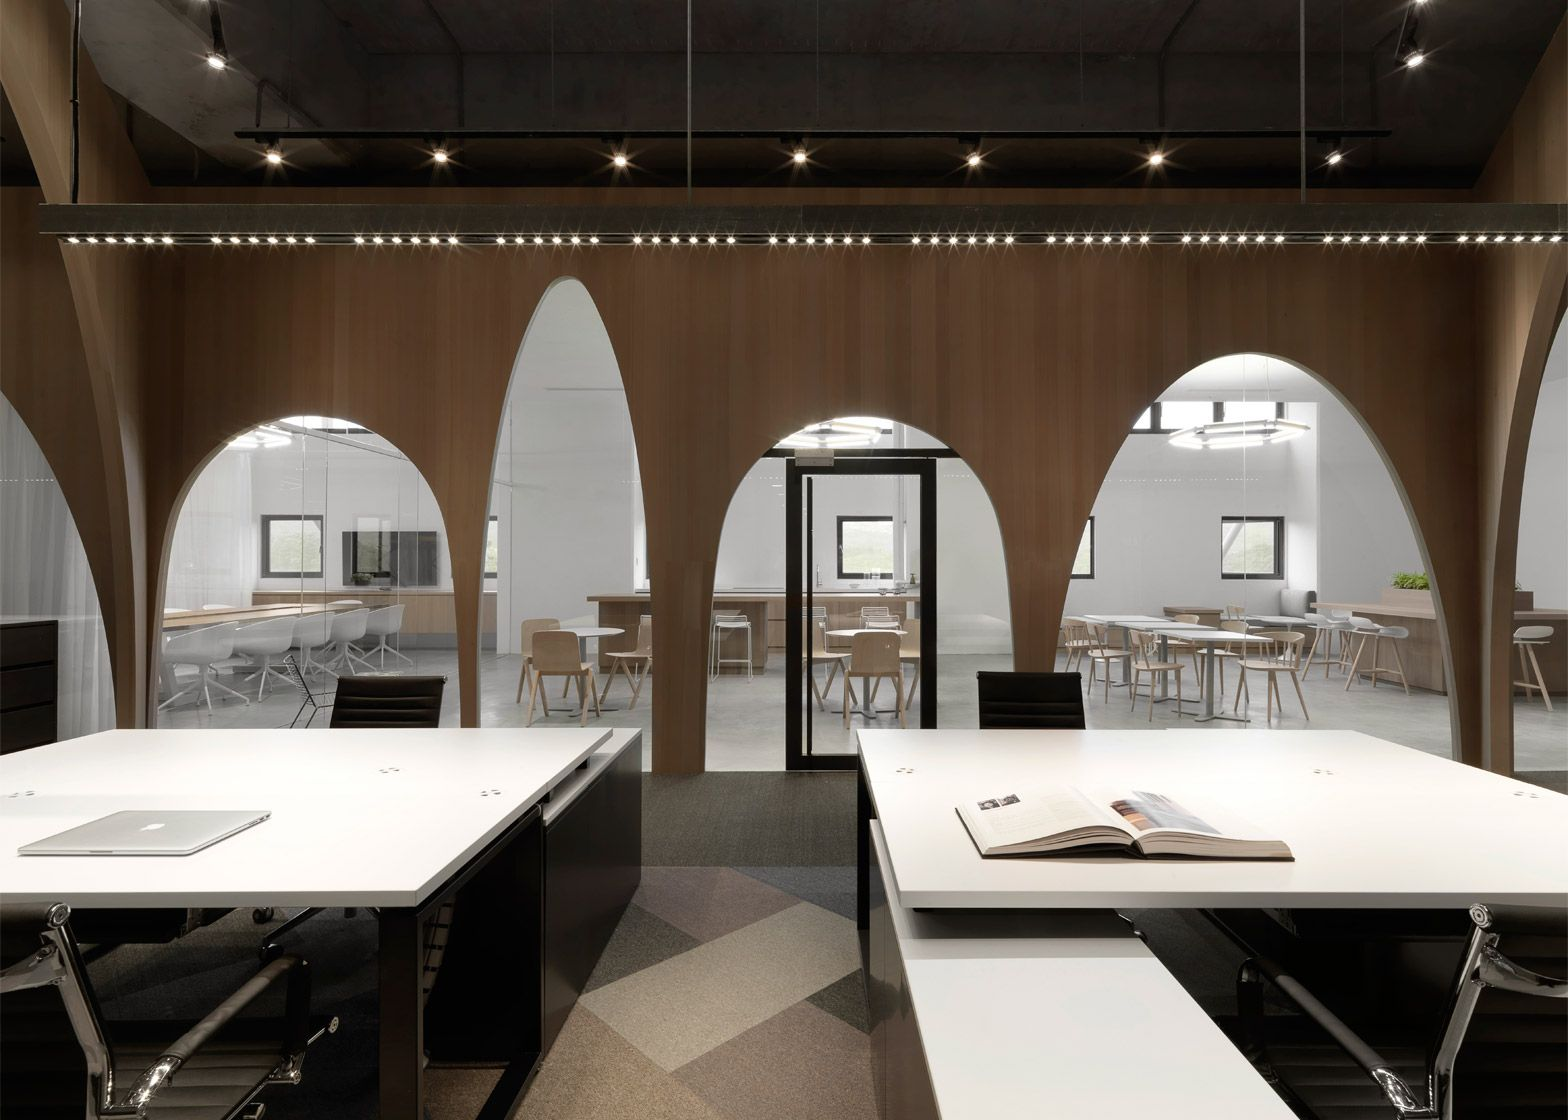 JC Architecture adds wooden arches to H&M's Taiwan office